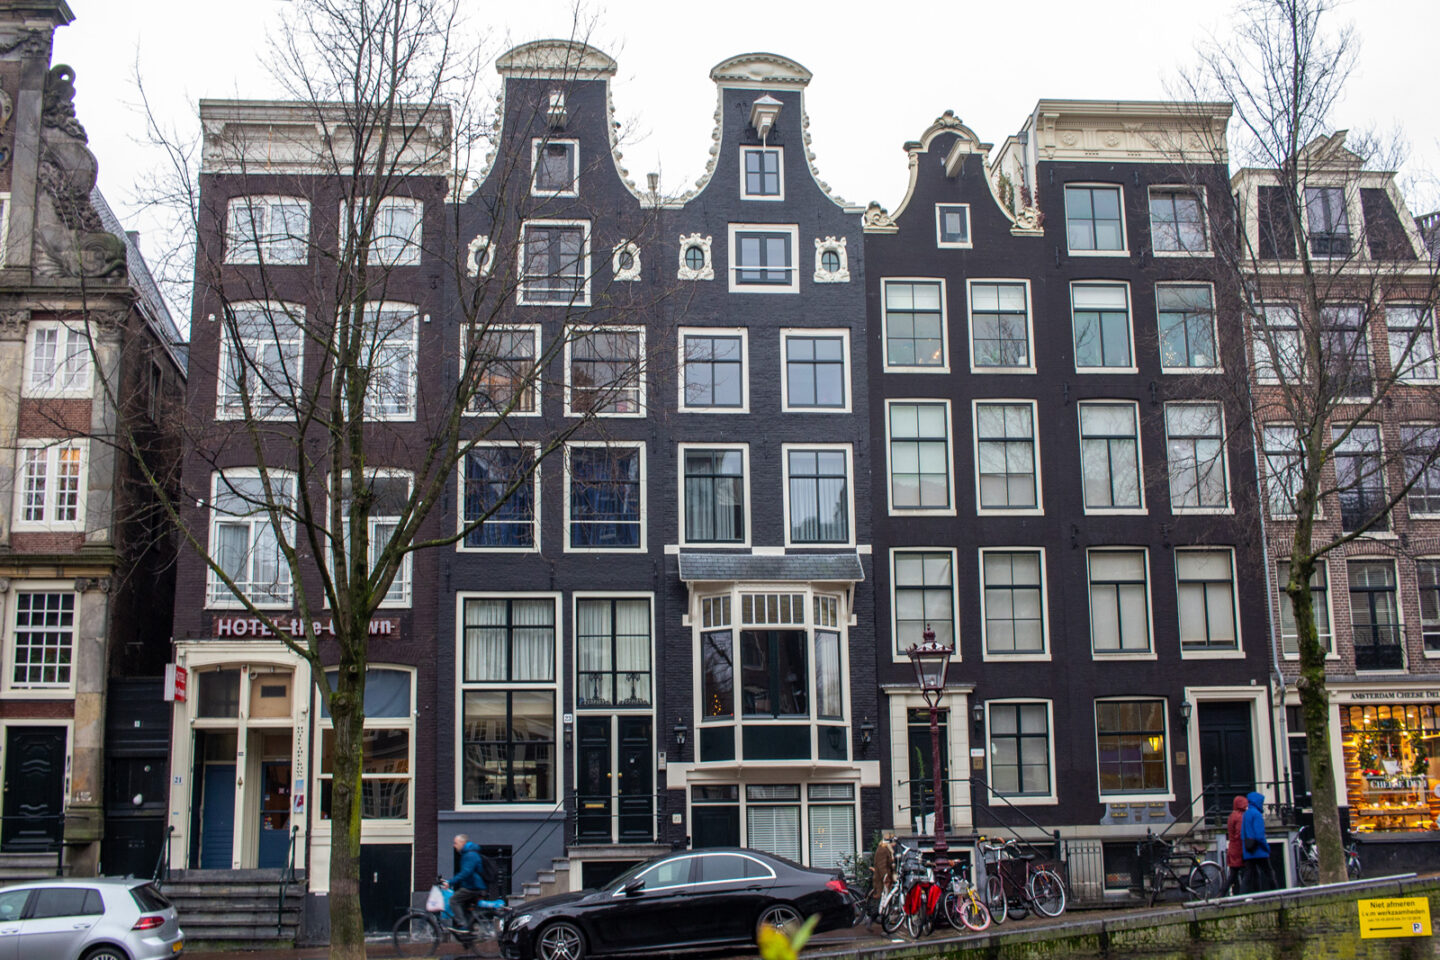 Quirky Amsterdam buildings